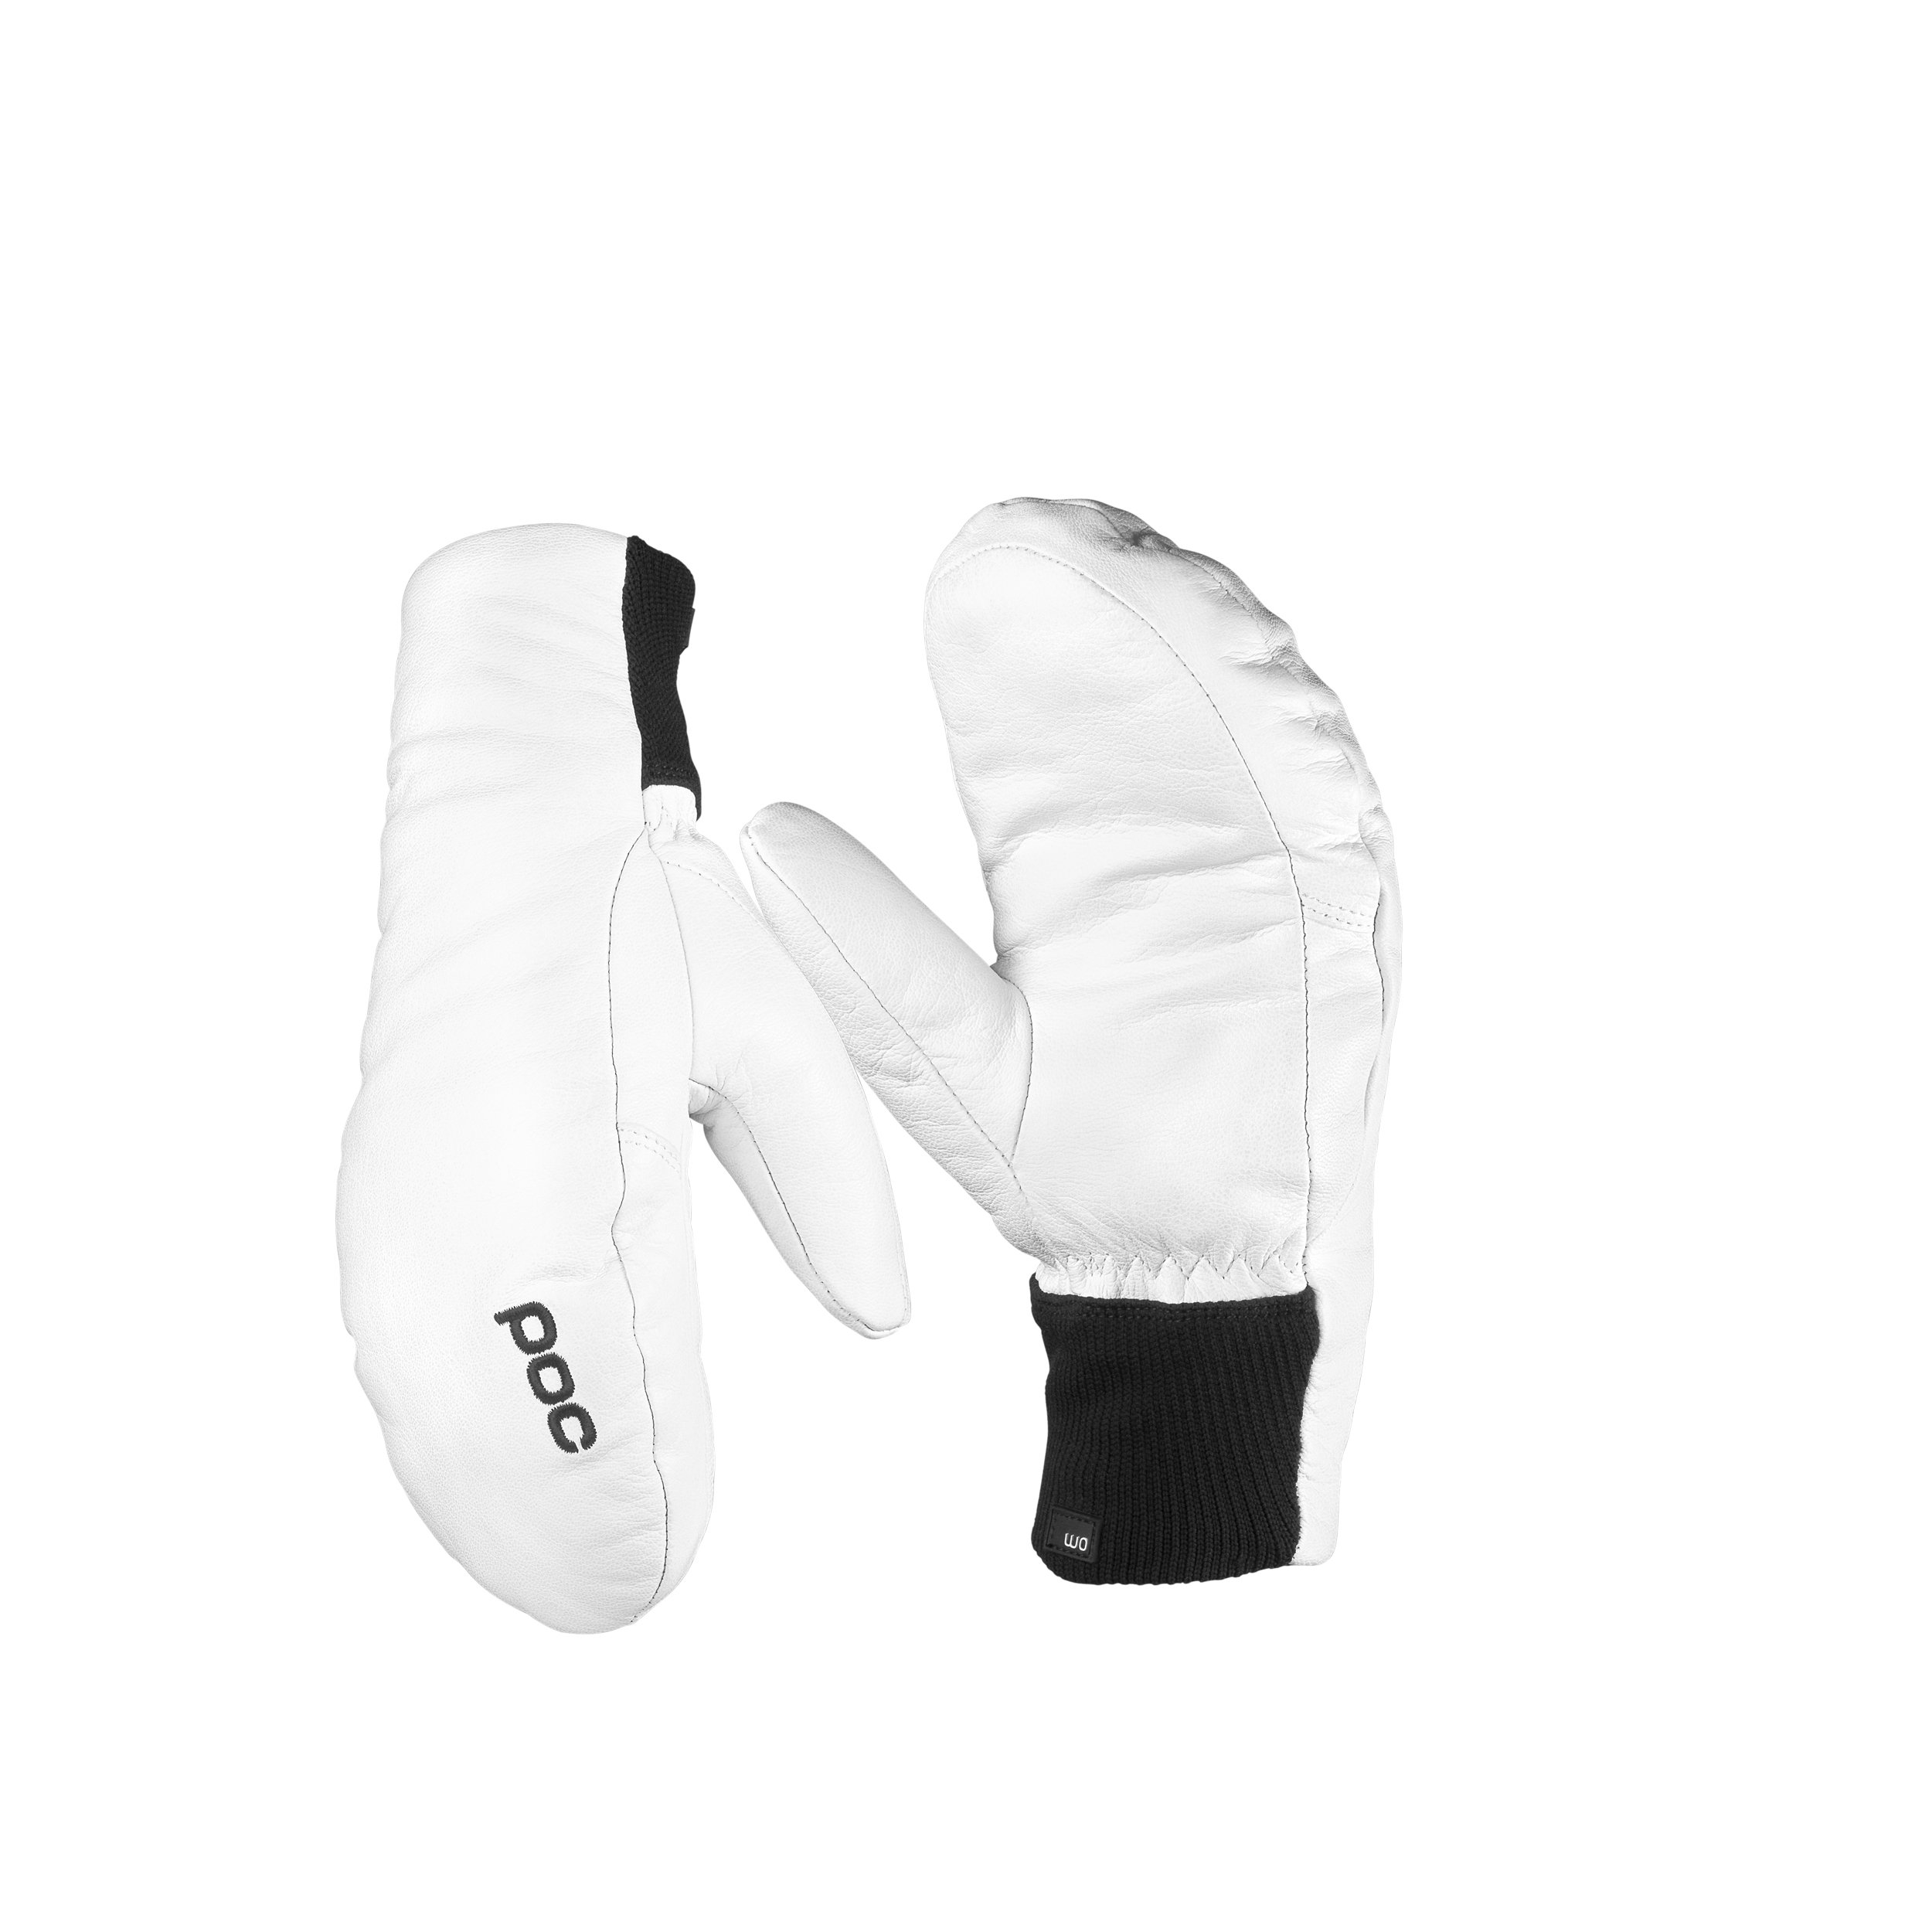 POC Helmets and Armor Women's WO Mitten Extra, Hydrogen White, Small by POC